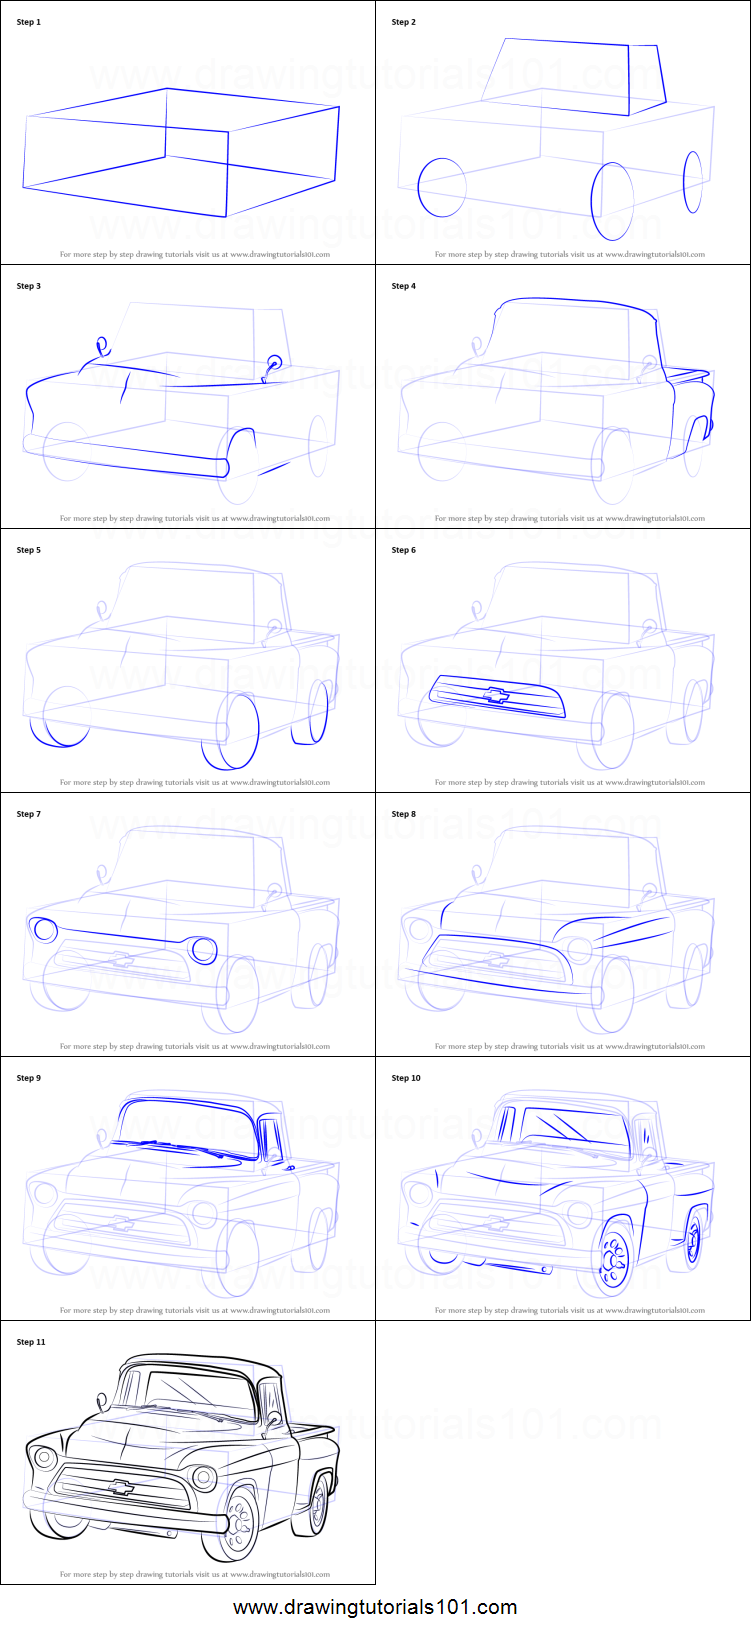 Uncategorized How To Draw A Truck Step By Step how to draw a 1955 chevy truck printable step by drawing sheet drawingtutorials101 com